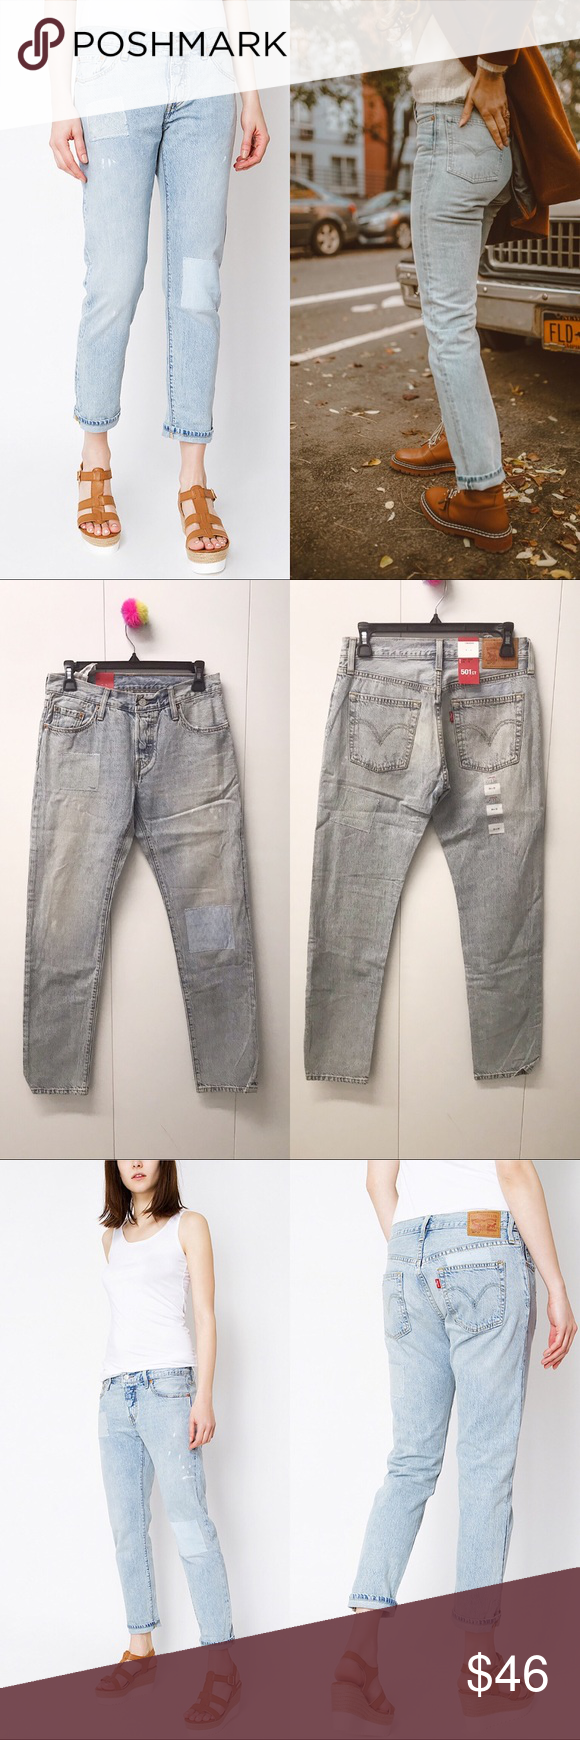 Levi S Jean Bayan Pantolon 501 Ct Customized Tapered Tapered Leg Button Fly Measurements Laying Flat Size 24 Waist 14 R Boyfriend Jeans Levis Jeans Levi